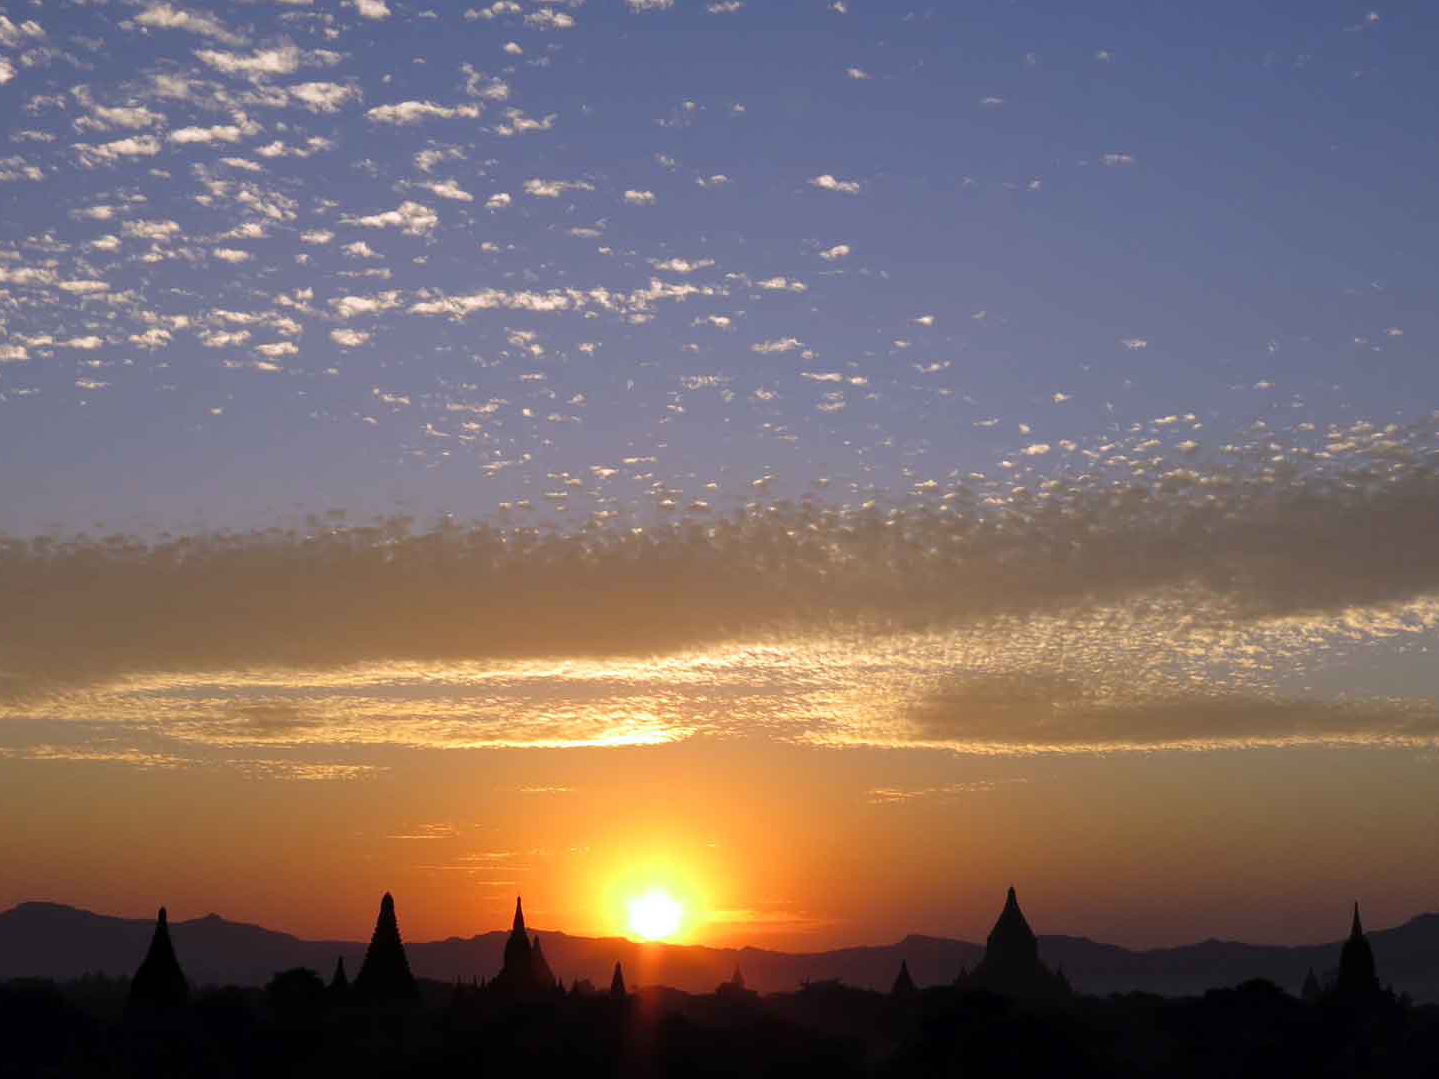 Silhouette of temples at sunset Bagan Myanmar